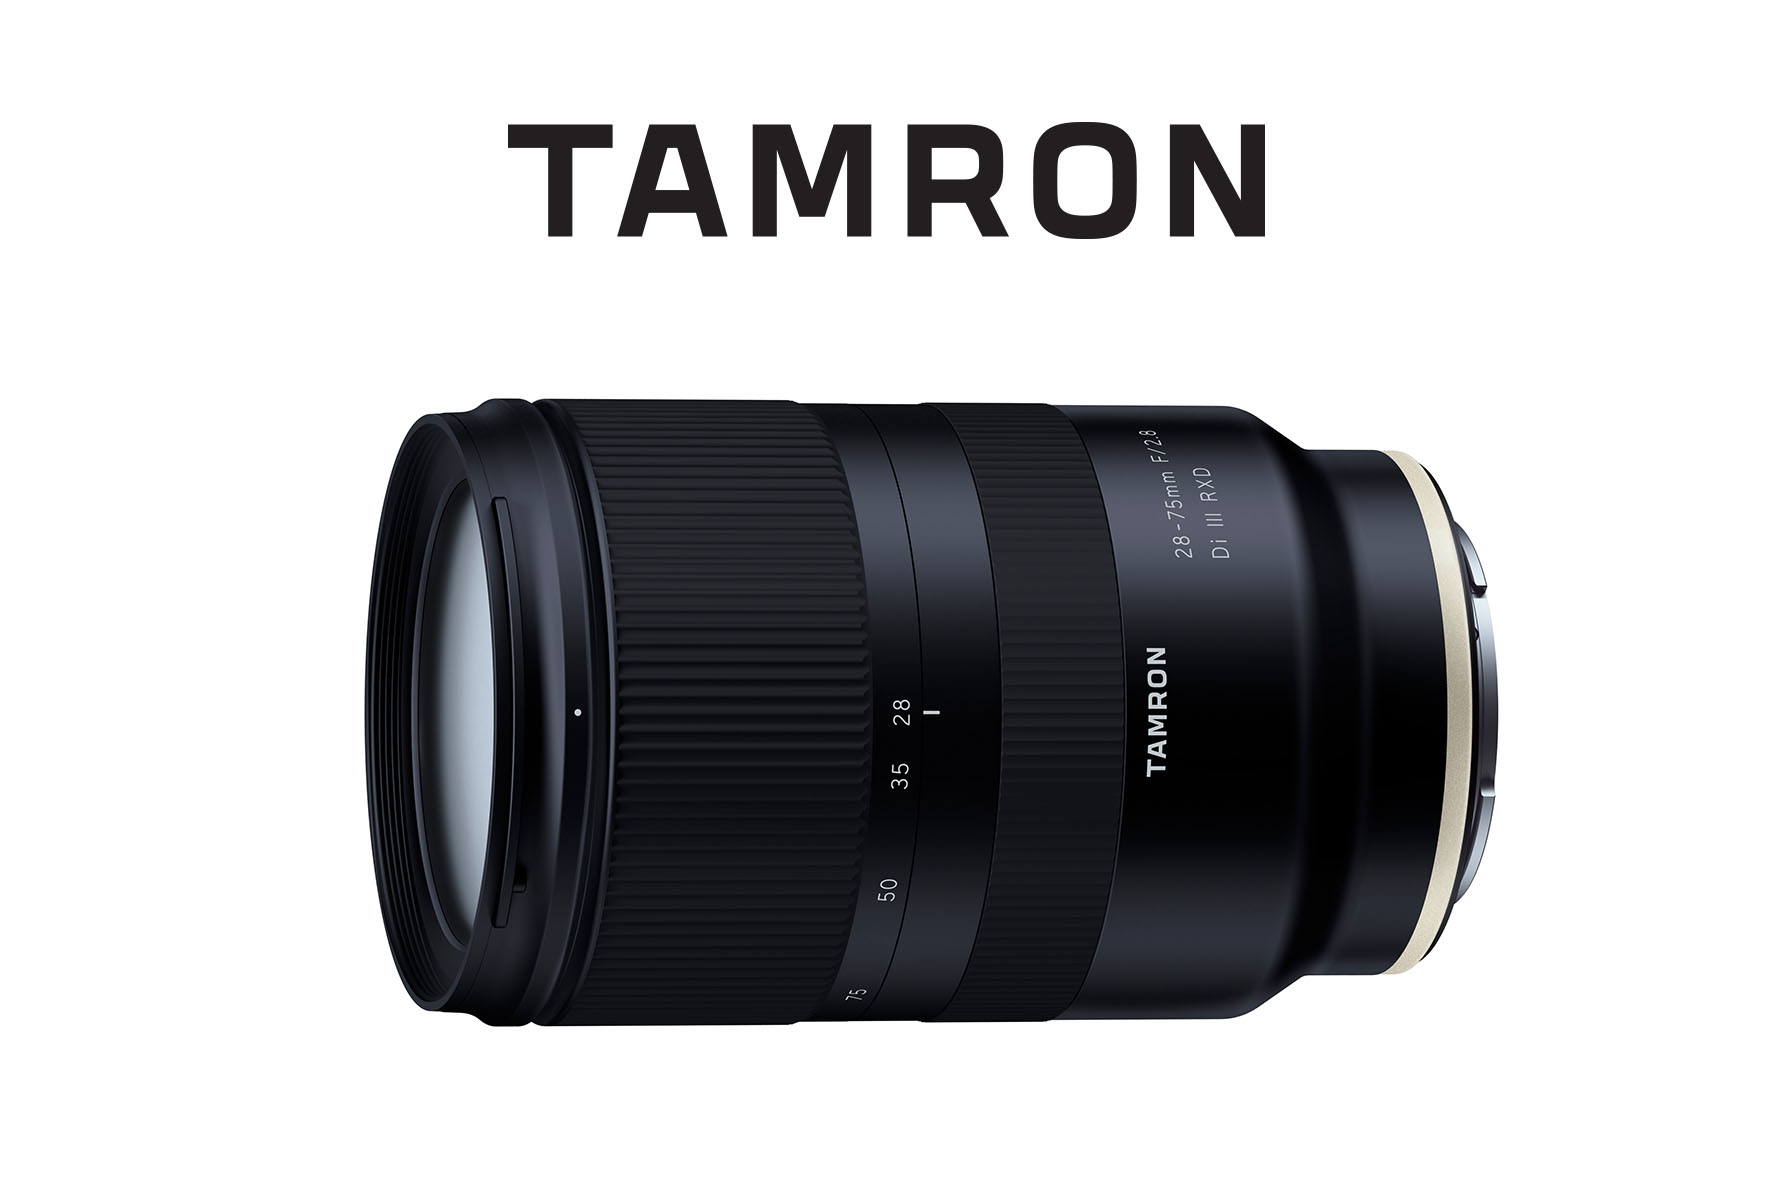 Tamron kunngjør 28-75mm f/2.8 for Sony E